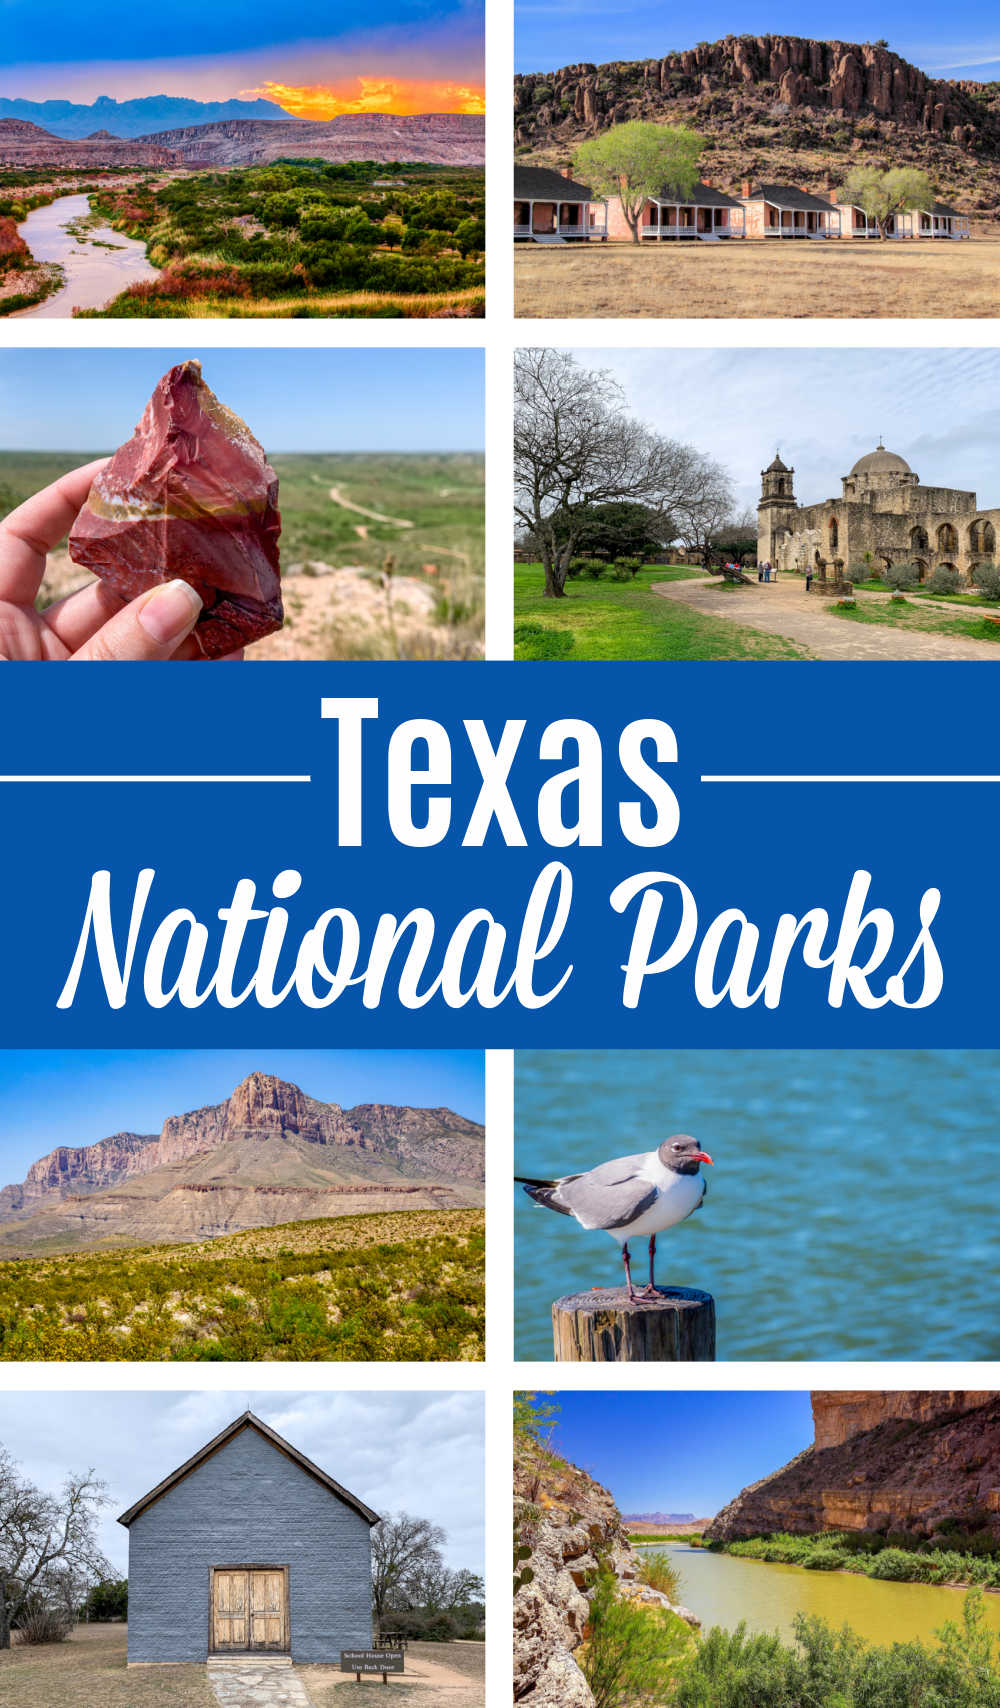 A photo collage showing different Texas National Parks.